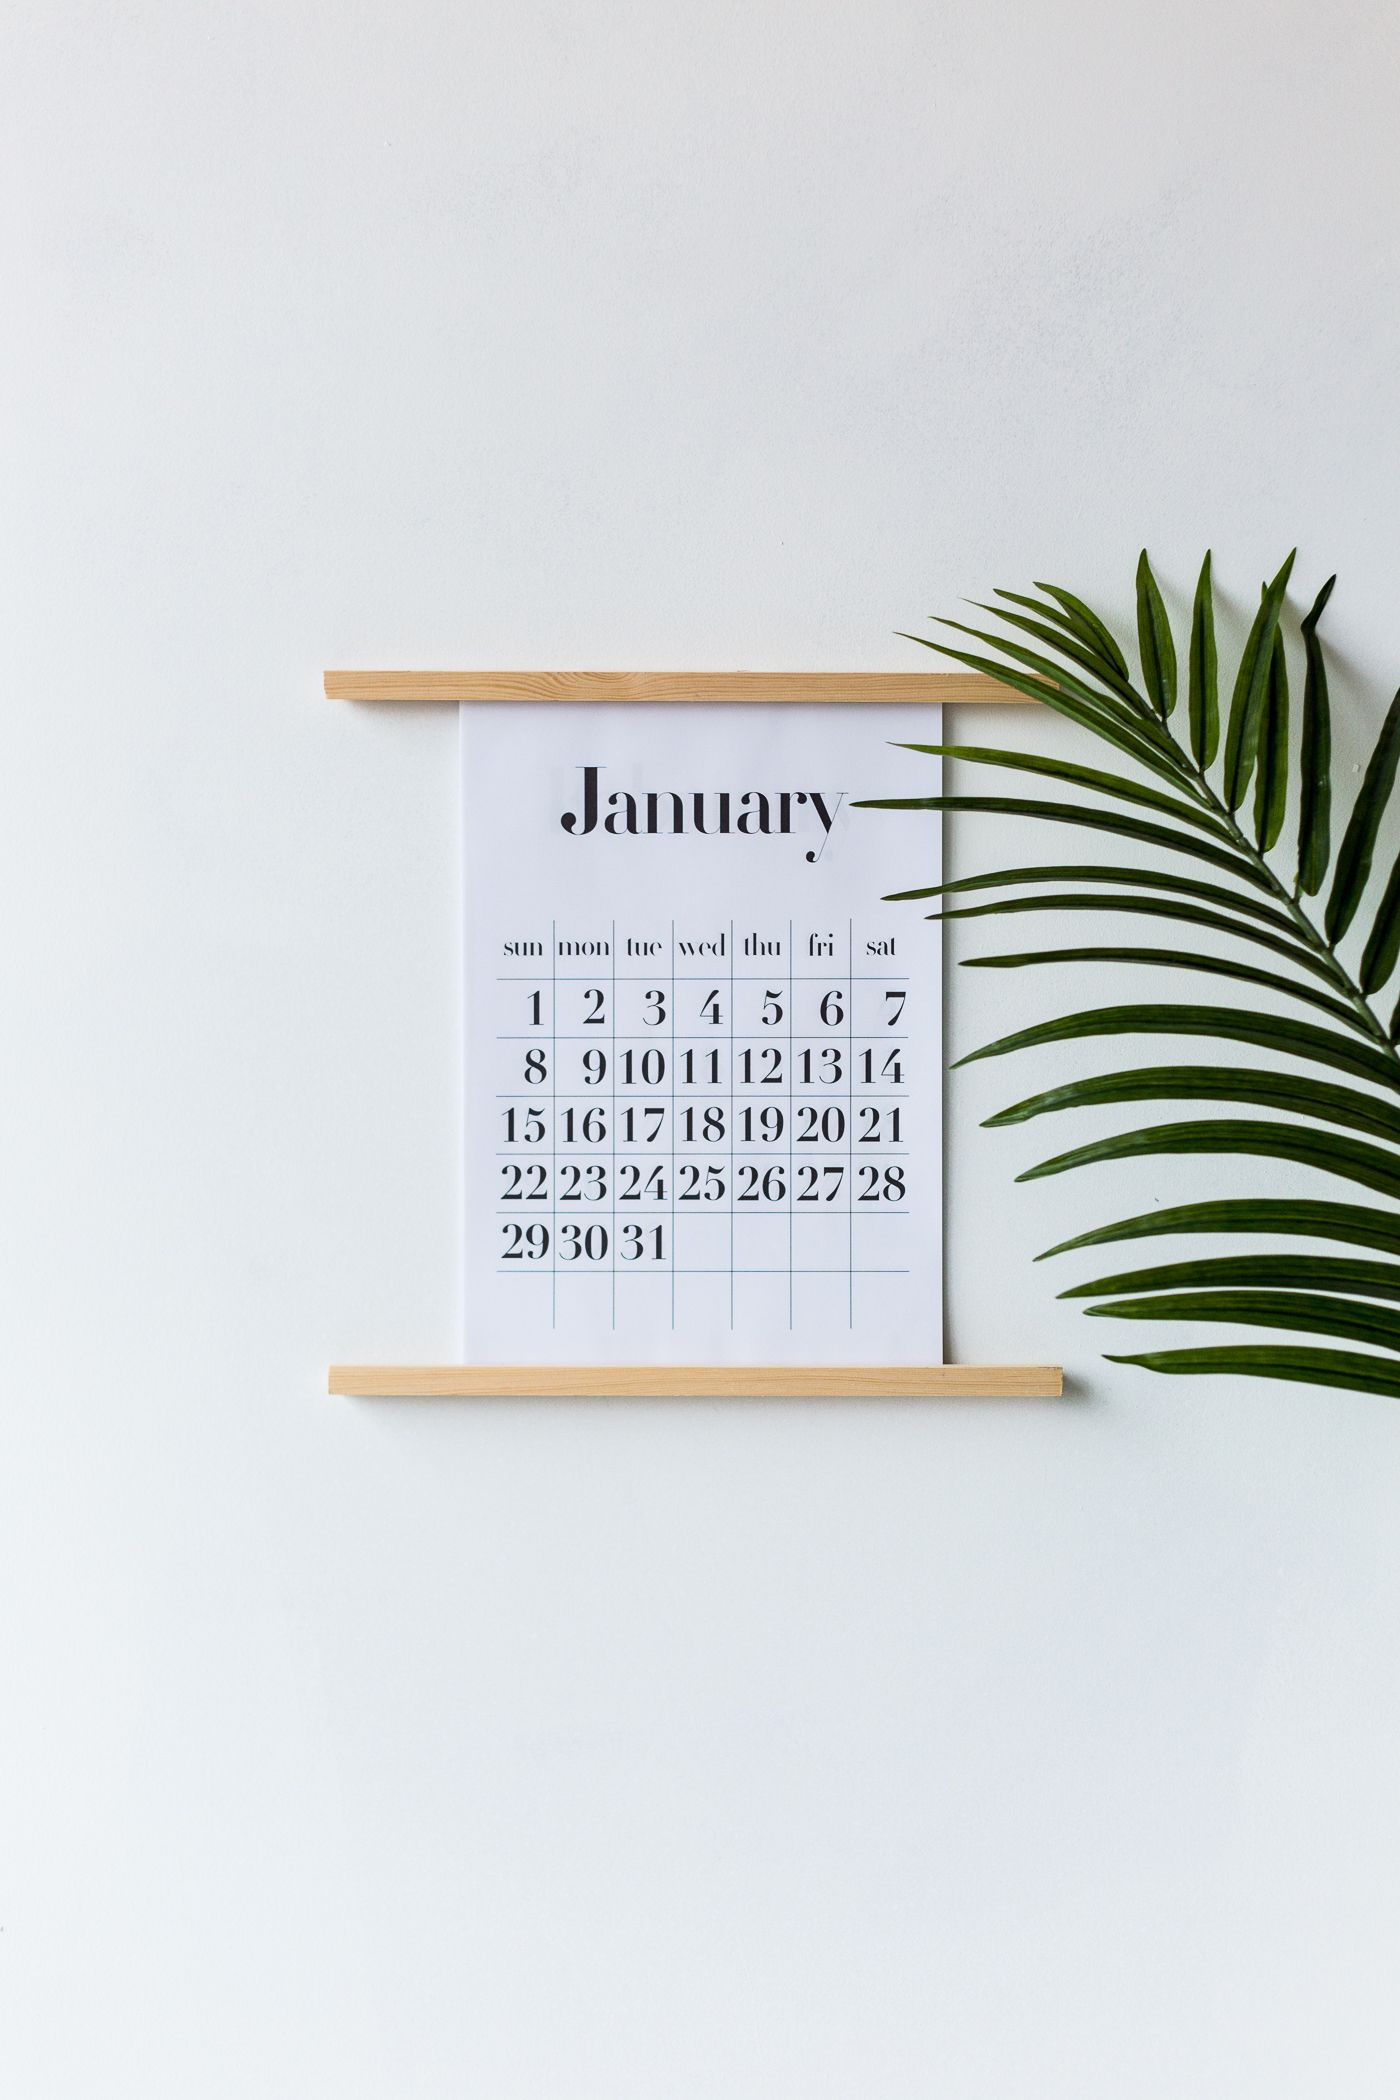 Diy calendar wall stand free a4a3 printable calendar calendar keep on track with this diy calendar wall stand free printable calendar to remind yourself to make every day count solutioingenieria Image collections